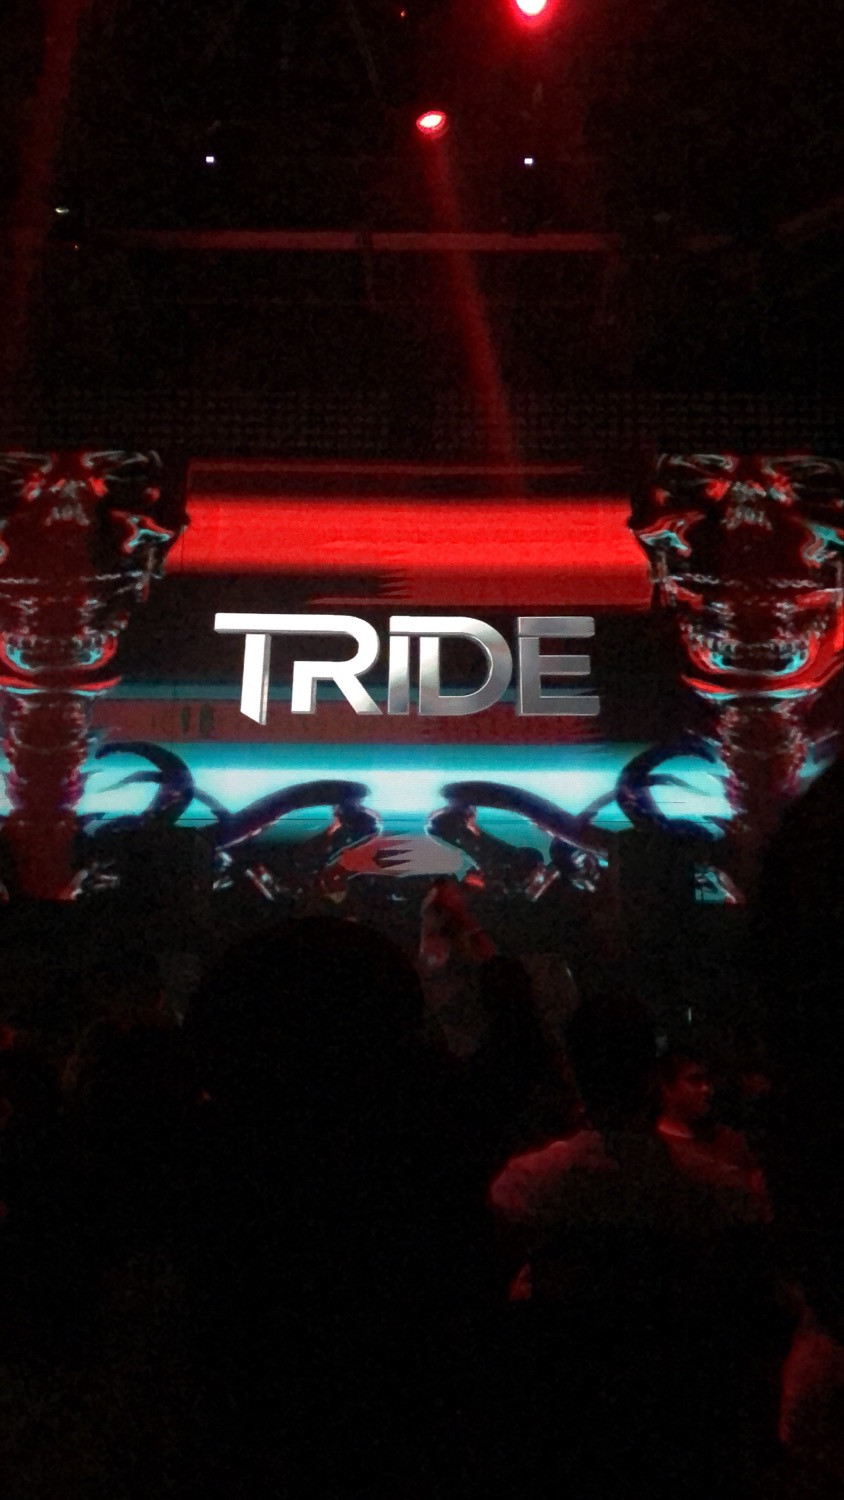 Tride features his personalized graphics on the large LED screen behind the DJ booth